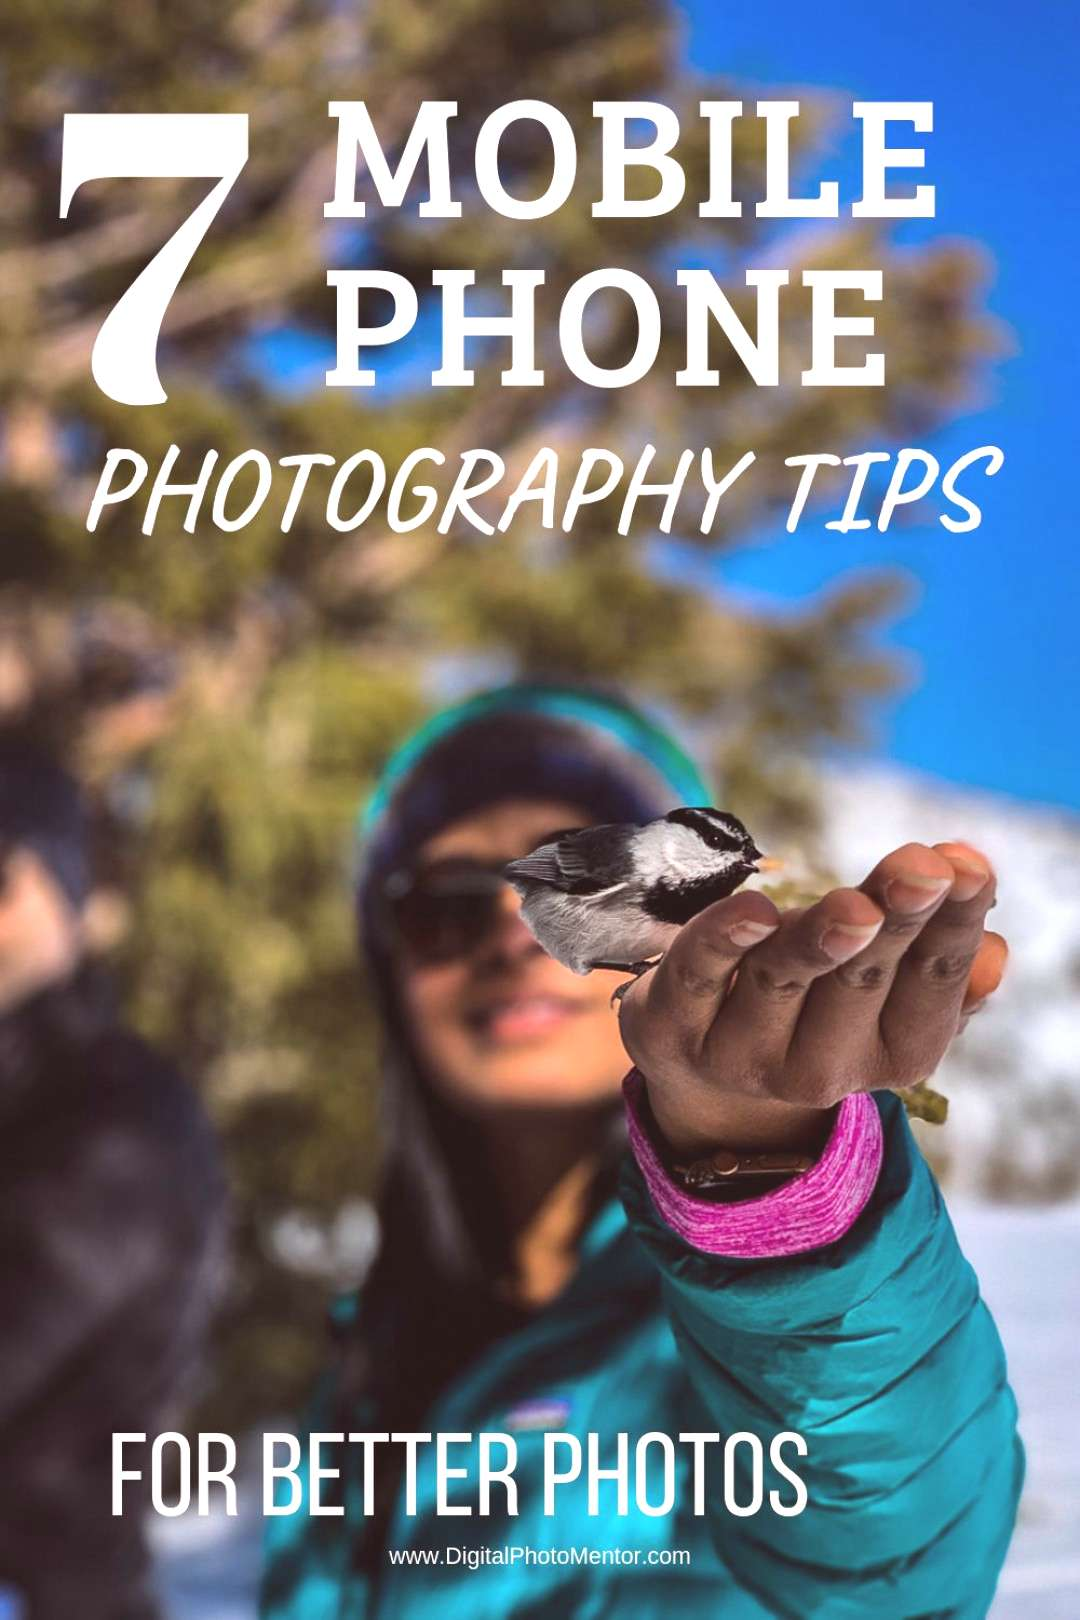 Mobile phone photography tips for learning to take better photos with your smartphone. Get your be